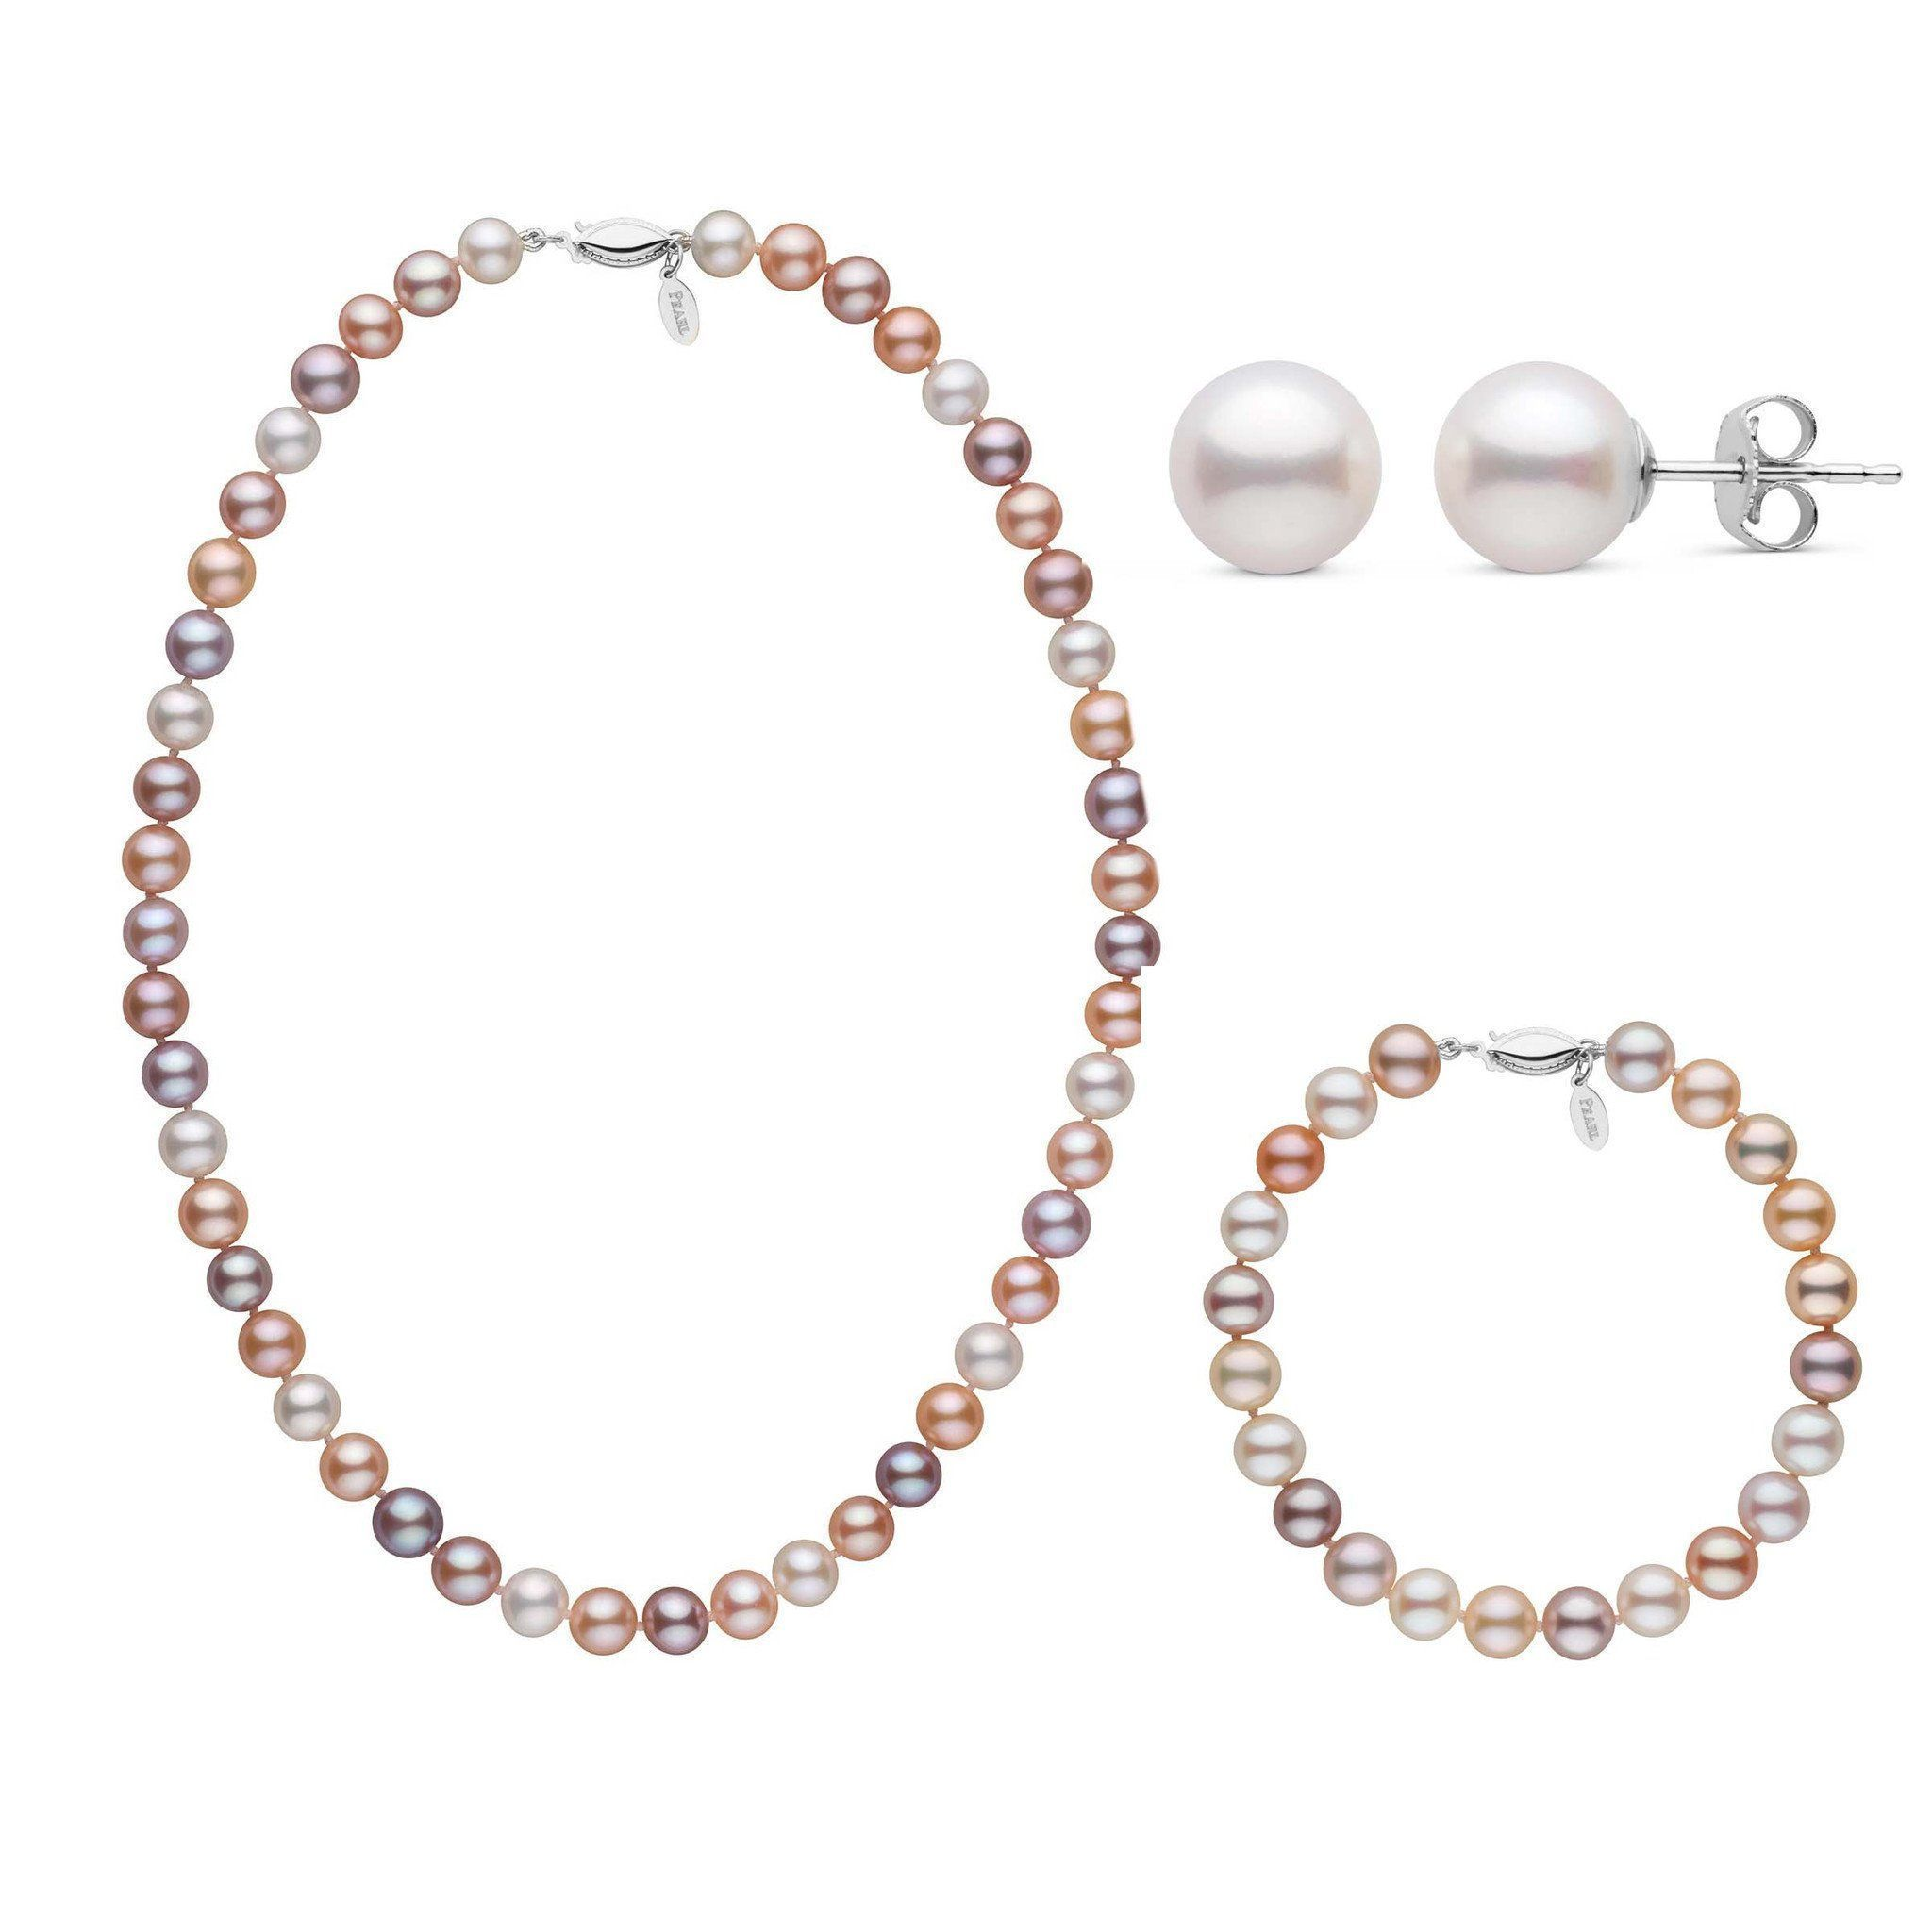 16 Inch 3 Piece Set of 7.5-8.0 mm Freshadama Multicolor Freshwater Pearl